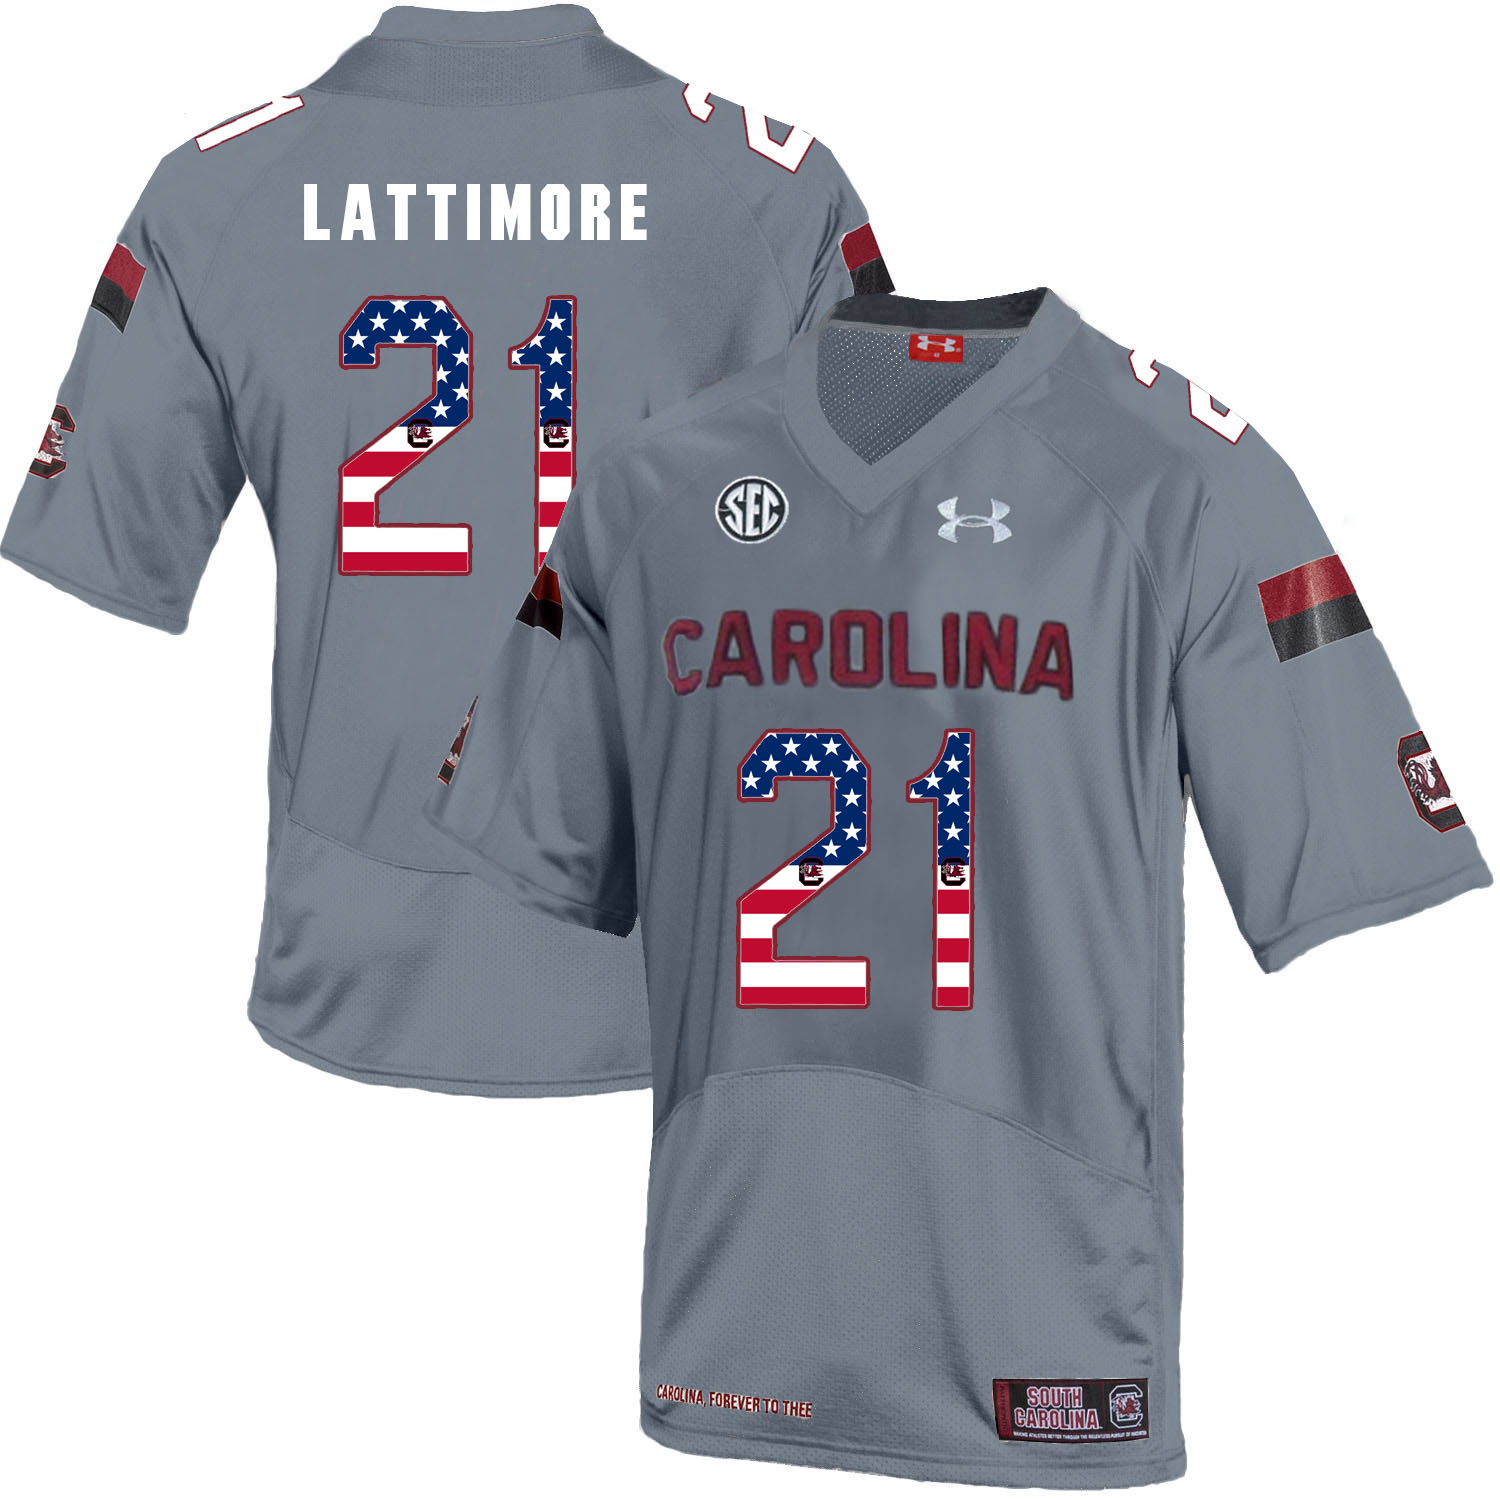 South Carolina Gamecocks 21 Marcus Lattimore Gray USA Flag College Football Jersey